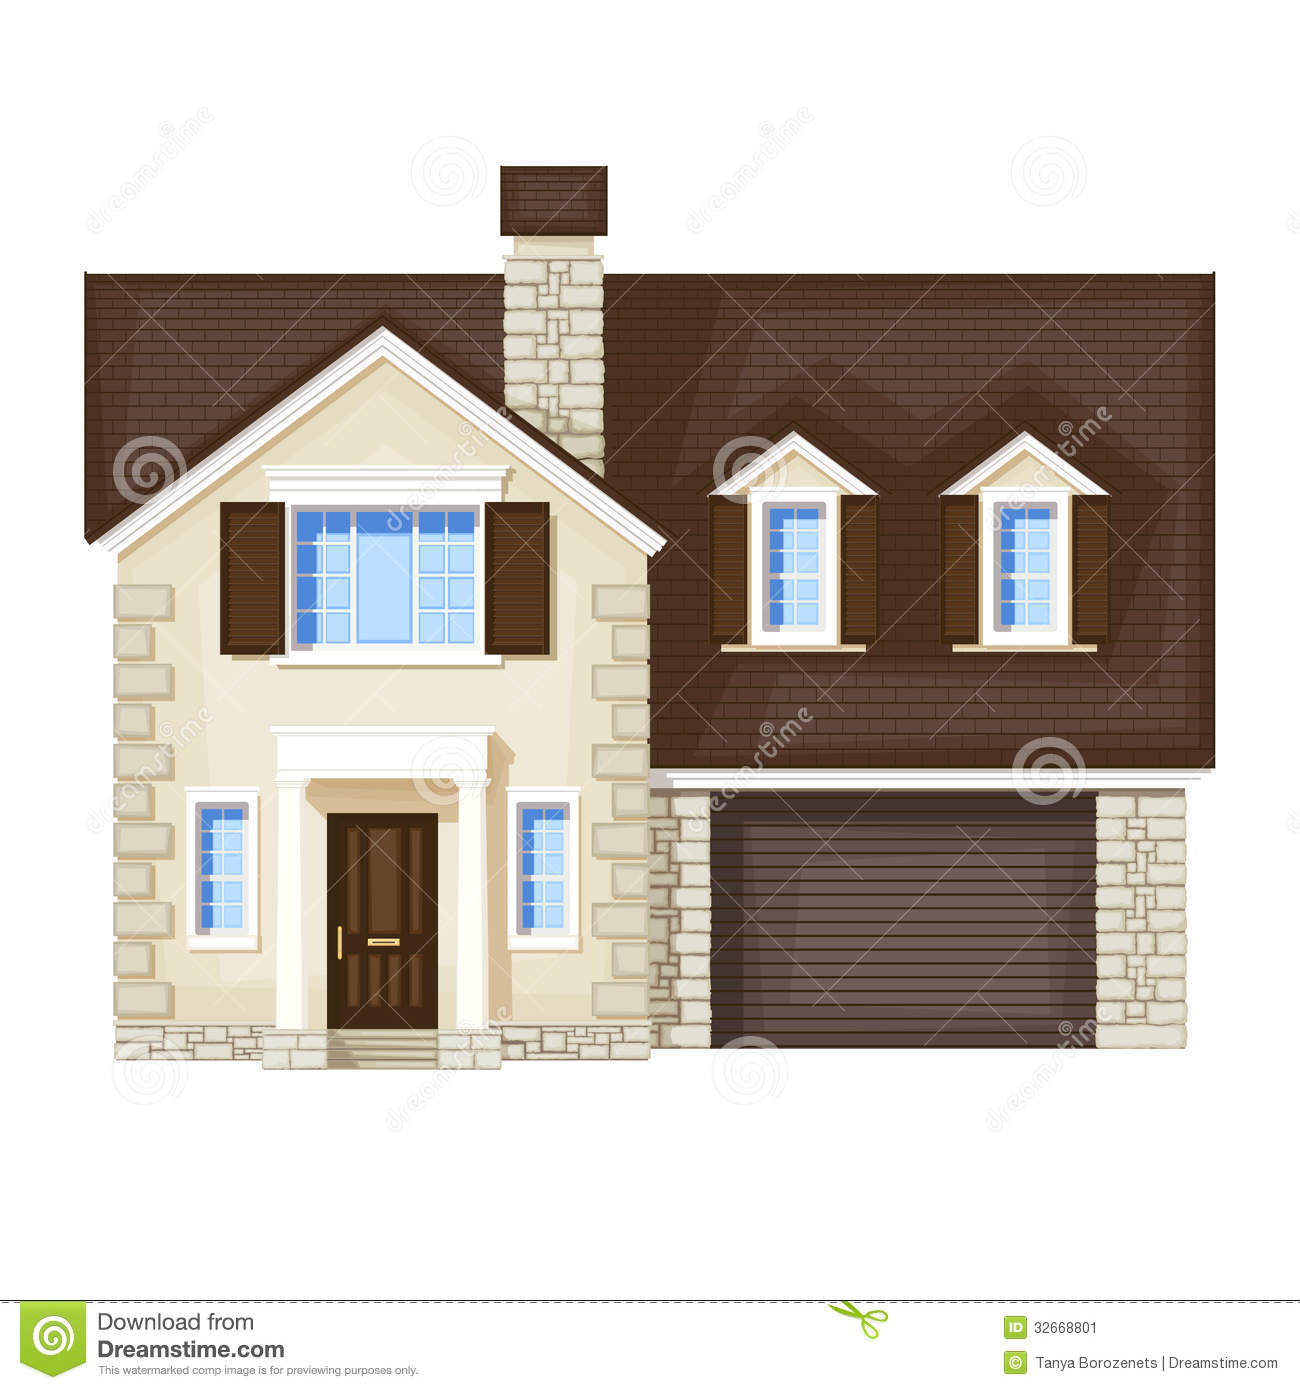 Flija furthermore 461126449327491194 further Sims 3 Japanese House Plans additionally Contemporary Garden Pavilion Pool House moreover Stock Image Townhouse Front Door House Vector Gradient Image32668801. on garden townhouse plans